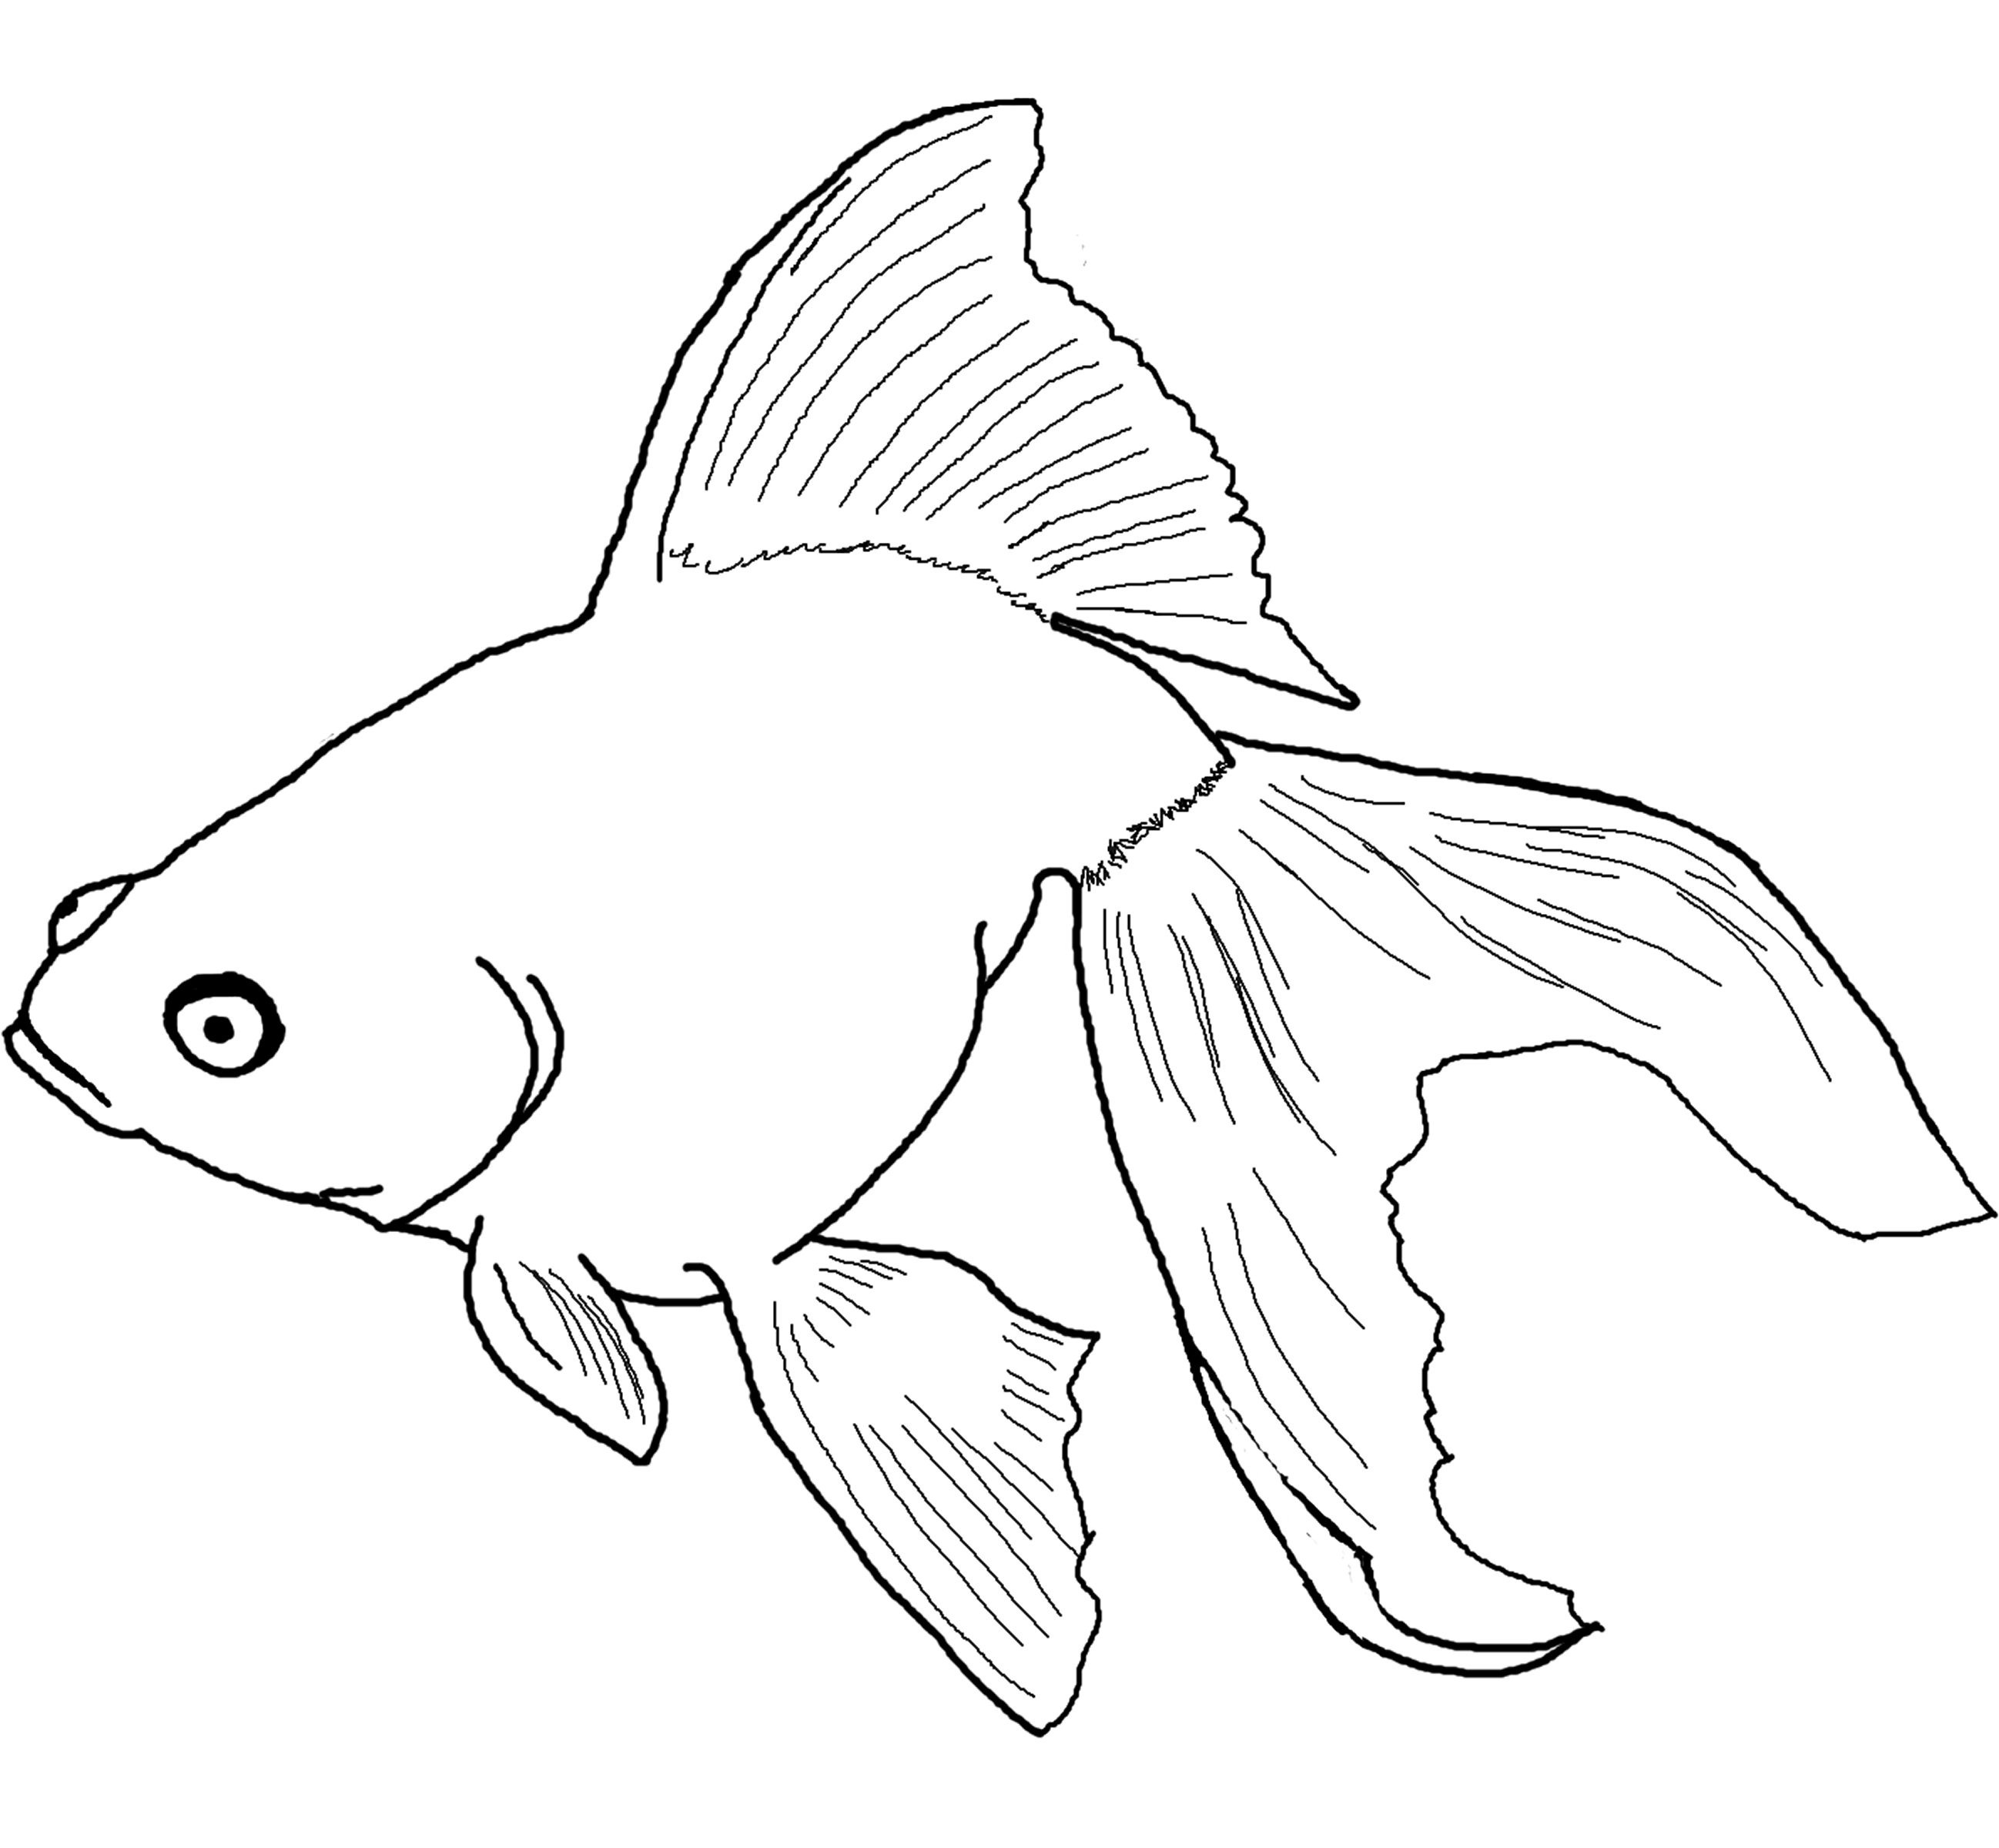 fish coloring pages for girls - photo#18